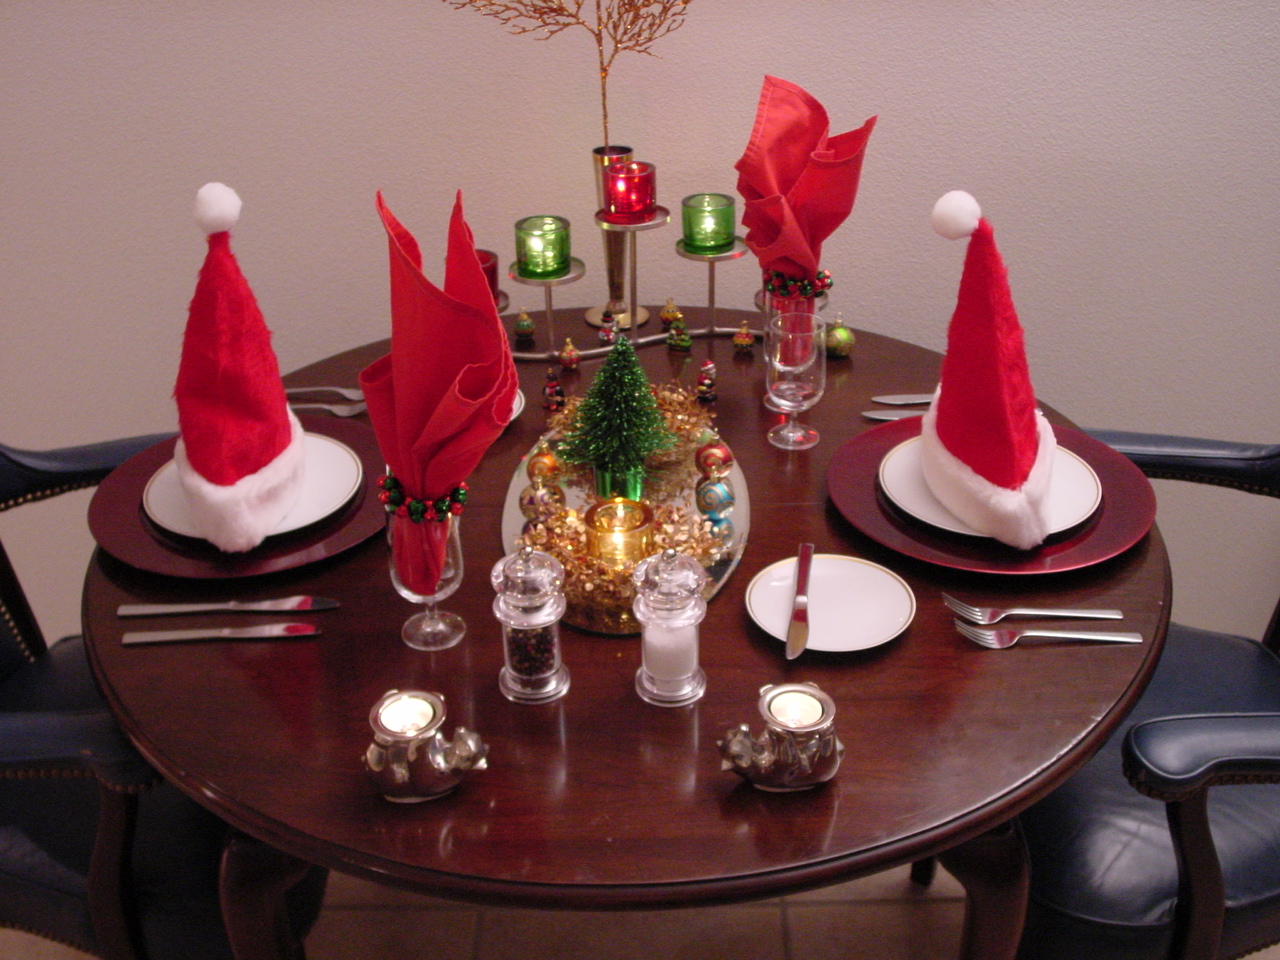 Santa hats and a mini Christmas tree and the 1970s 'Gold Rim' chiina pattern create the mood for this cozy holiday meal.